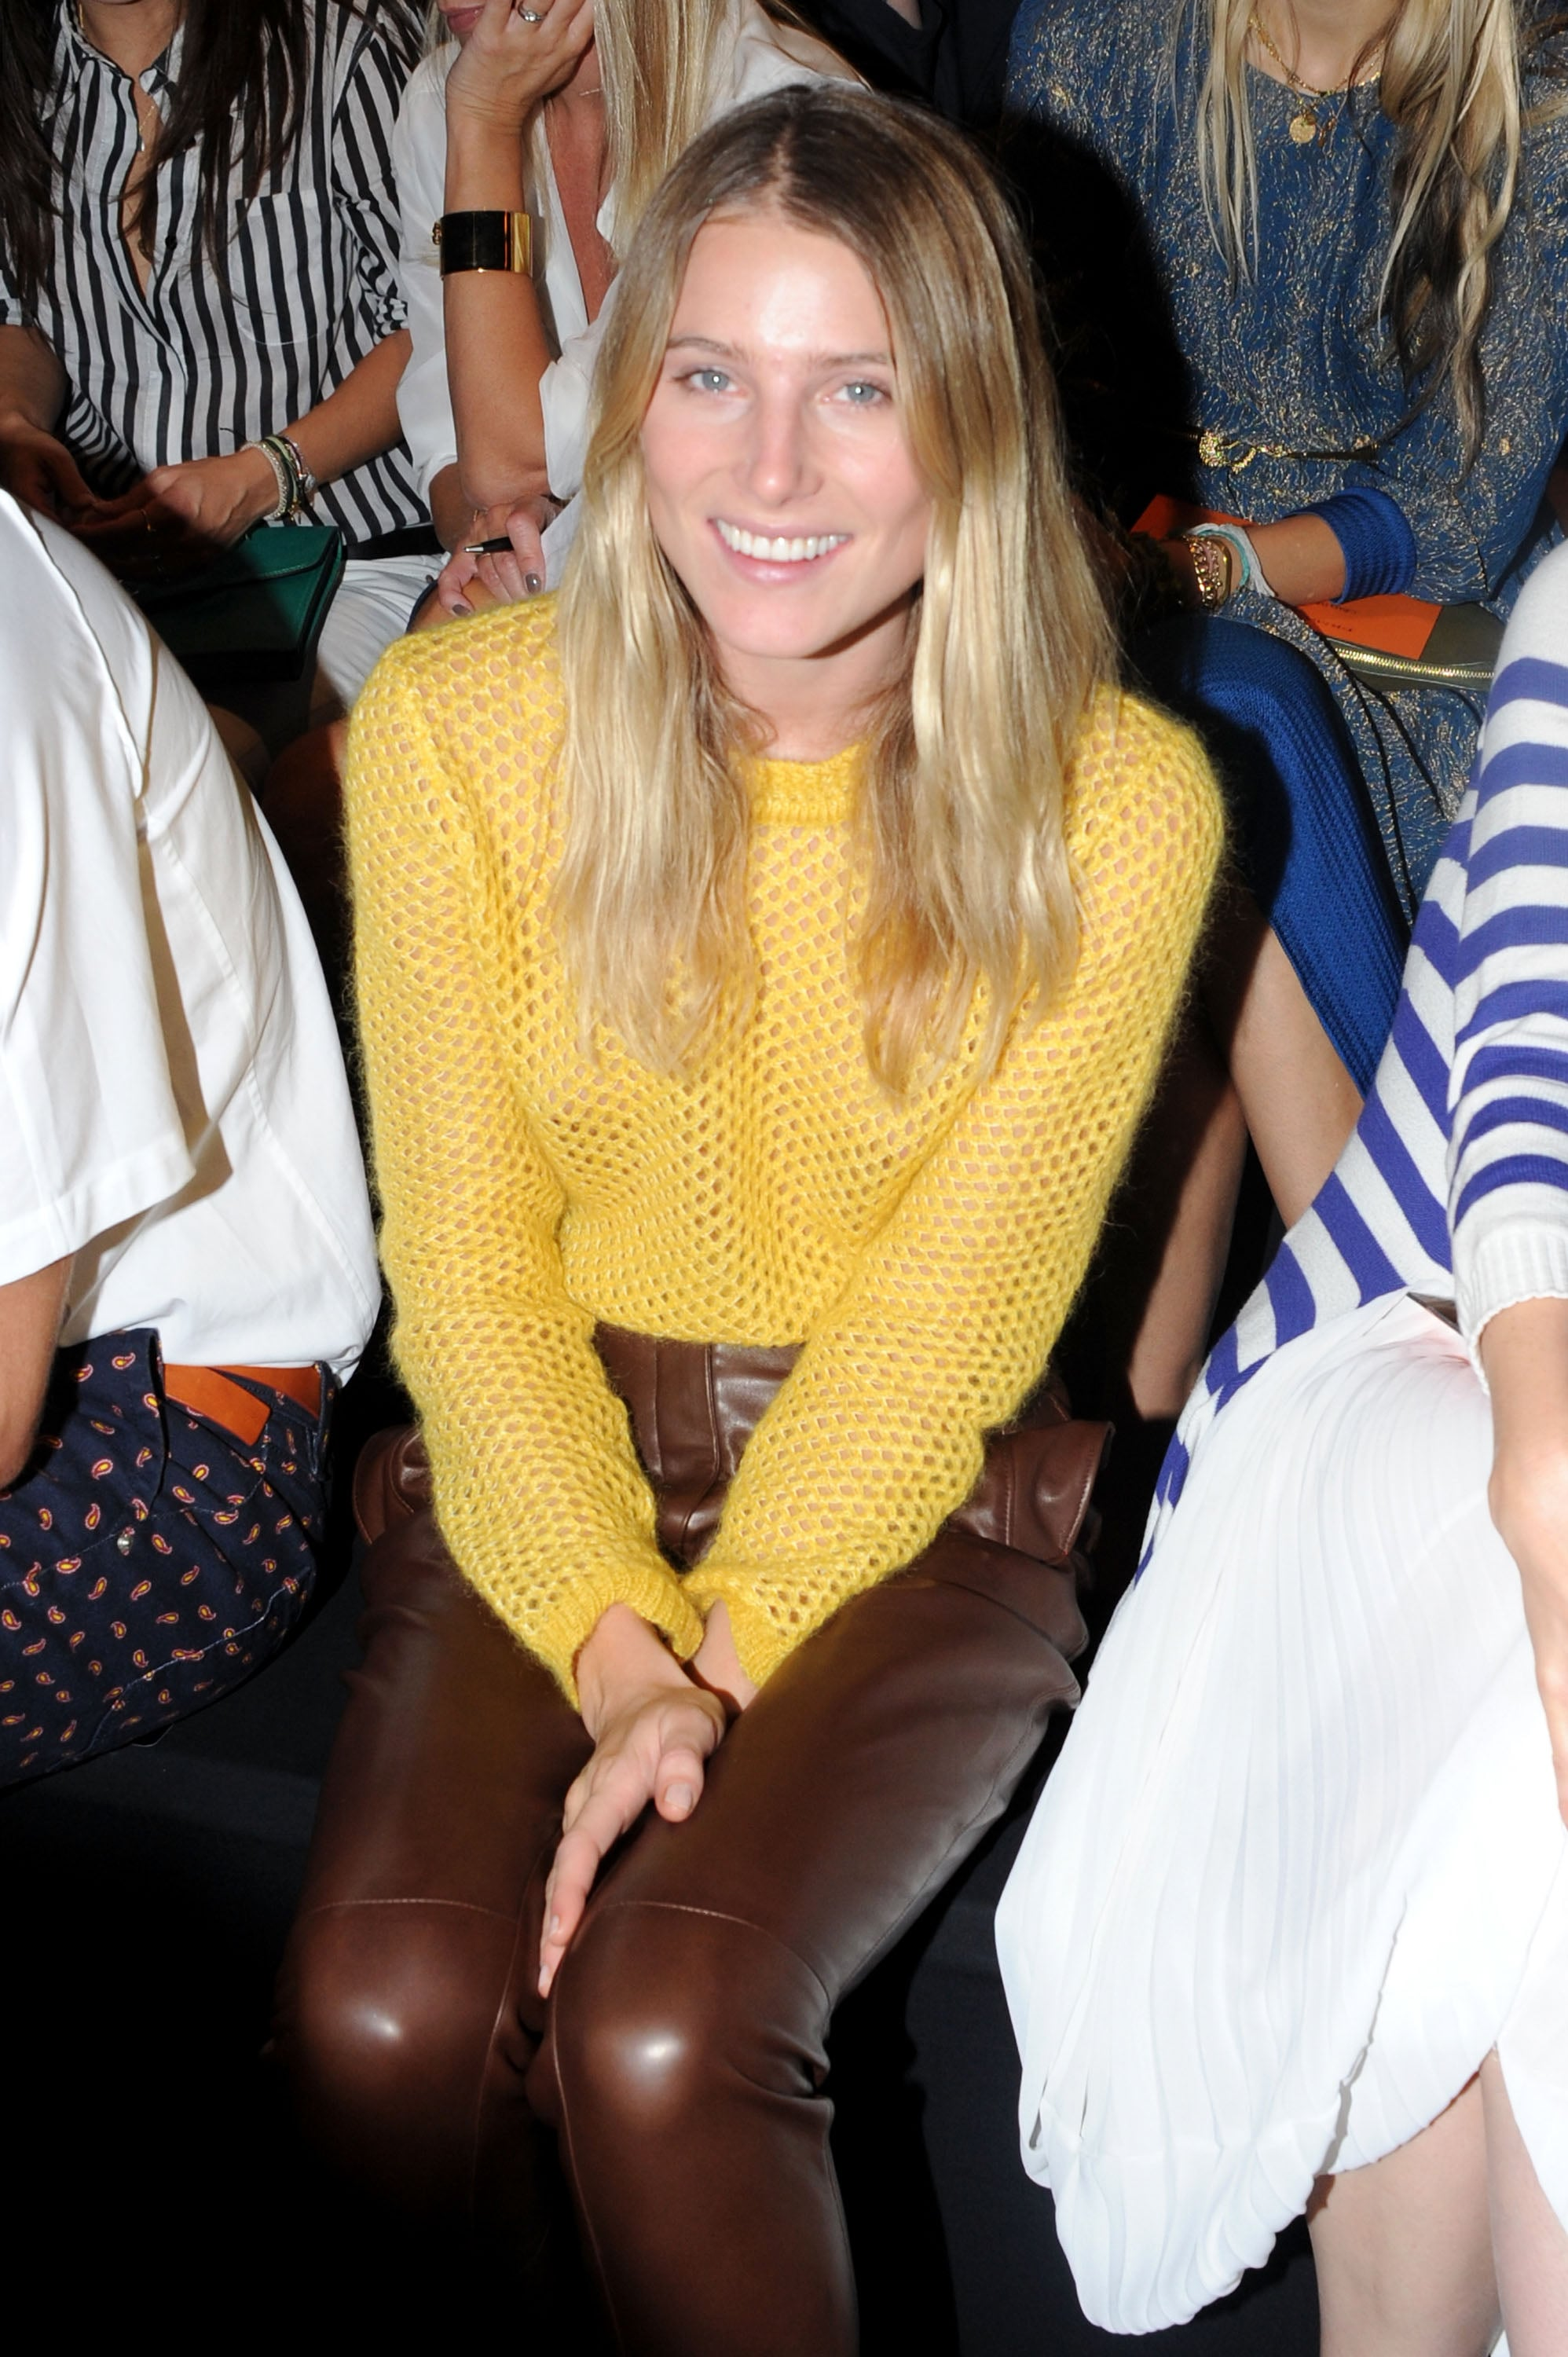 Dree Hemingway styled up a gorgeous Fall look, in a yellow knit and contrasting leather pants, front row at Ermanno Scervino at Milan Fashion Week.